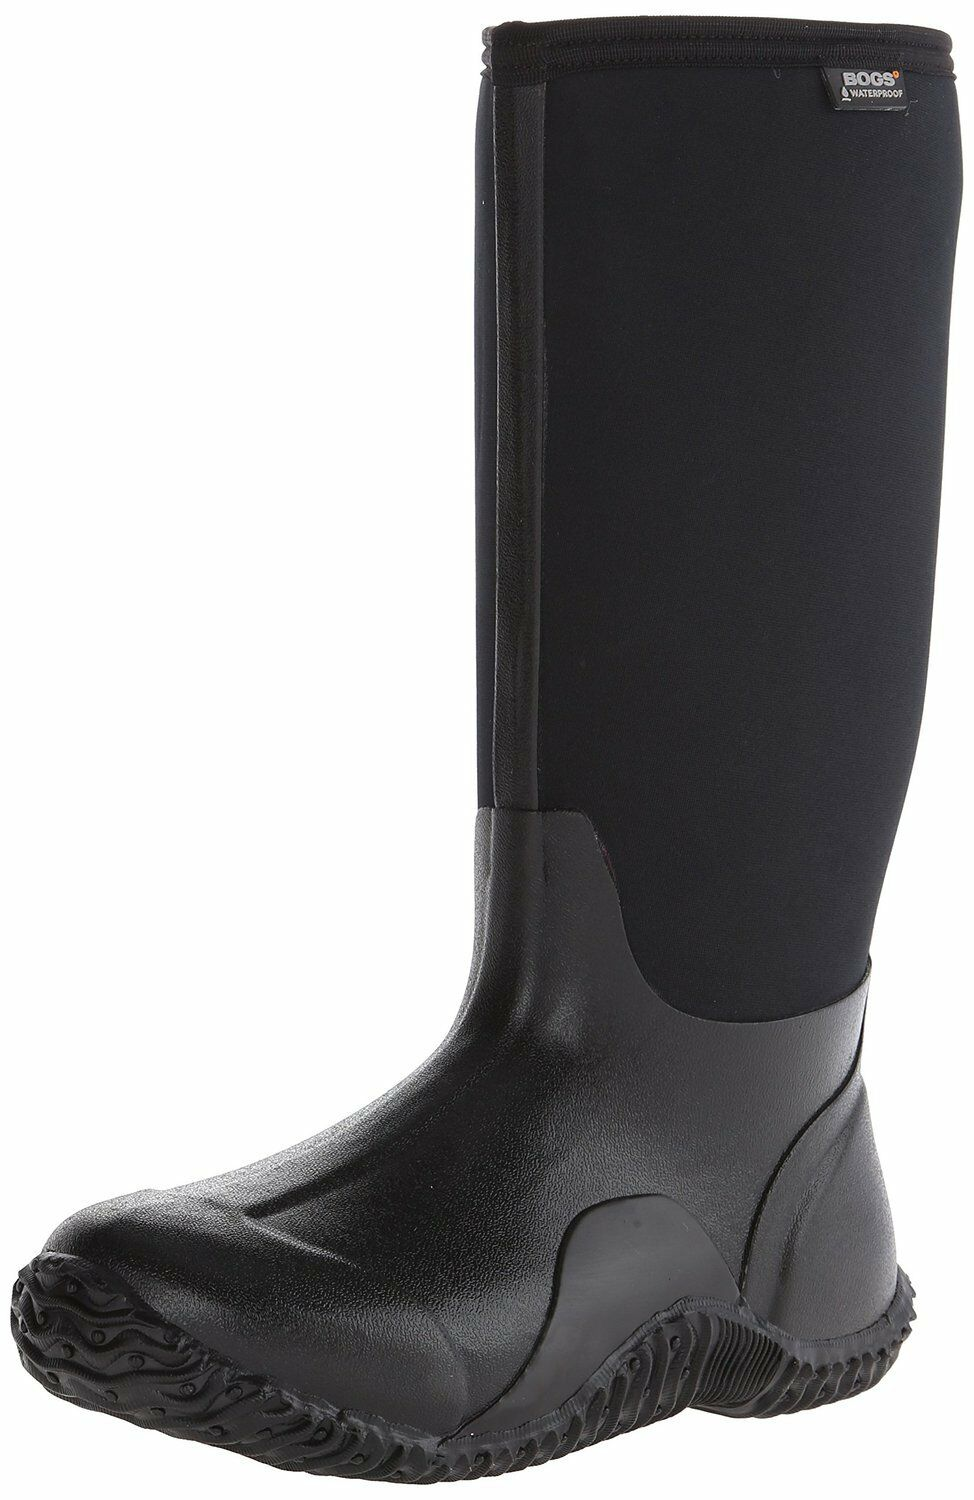 Bogs Womens Classic High Waterproof Insulated Boot- Pick SZ/Color.